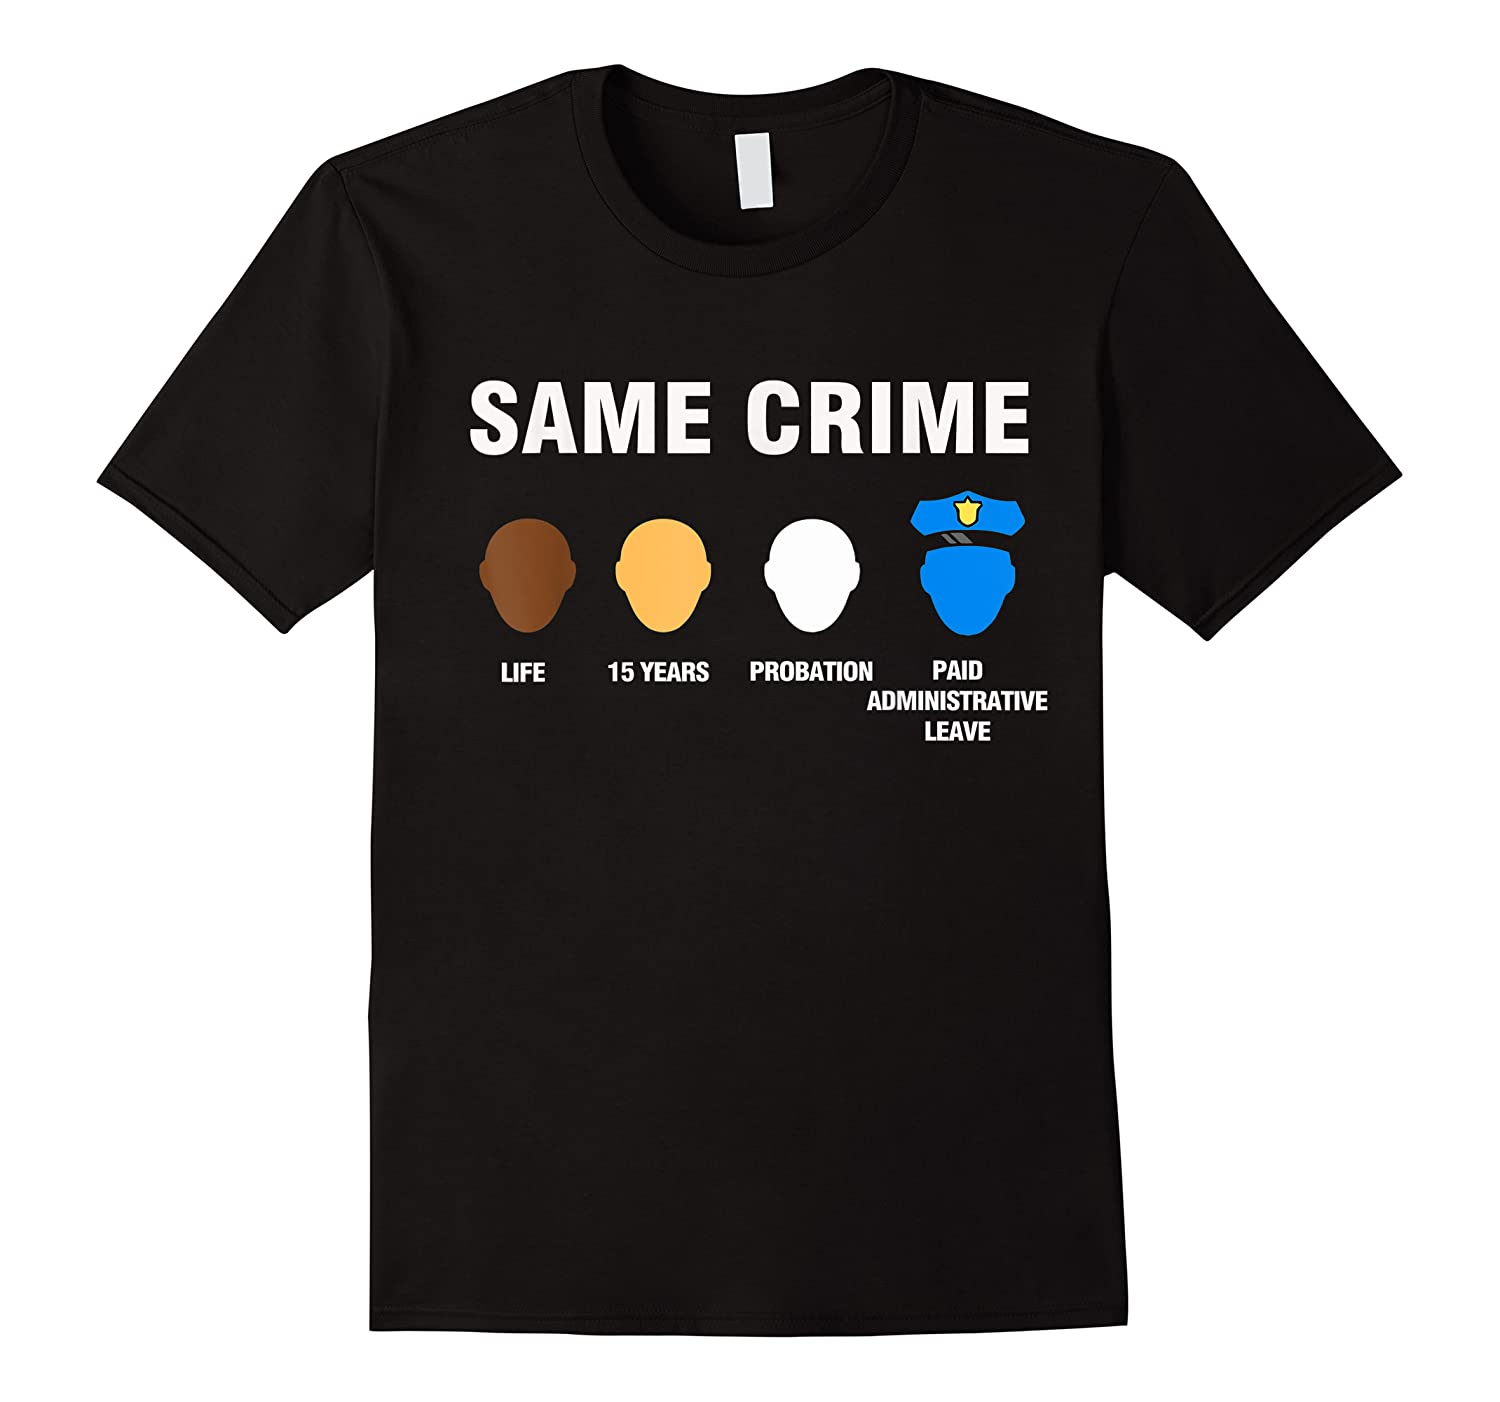 Same Crime Life 15 Years Probation Paid Administrative Leave Shirts